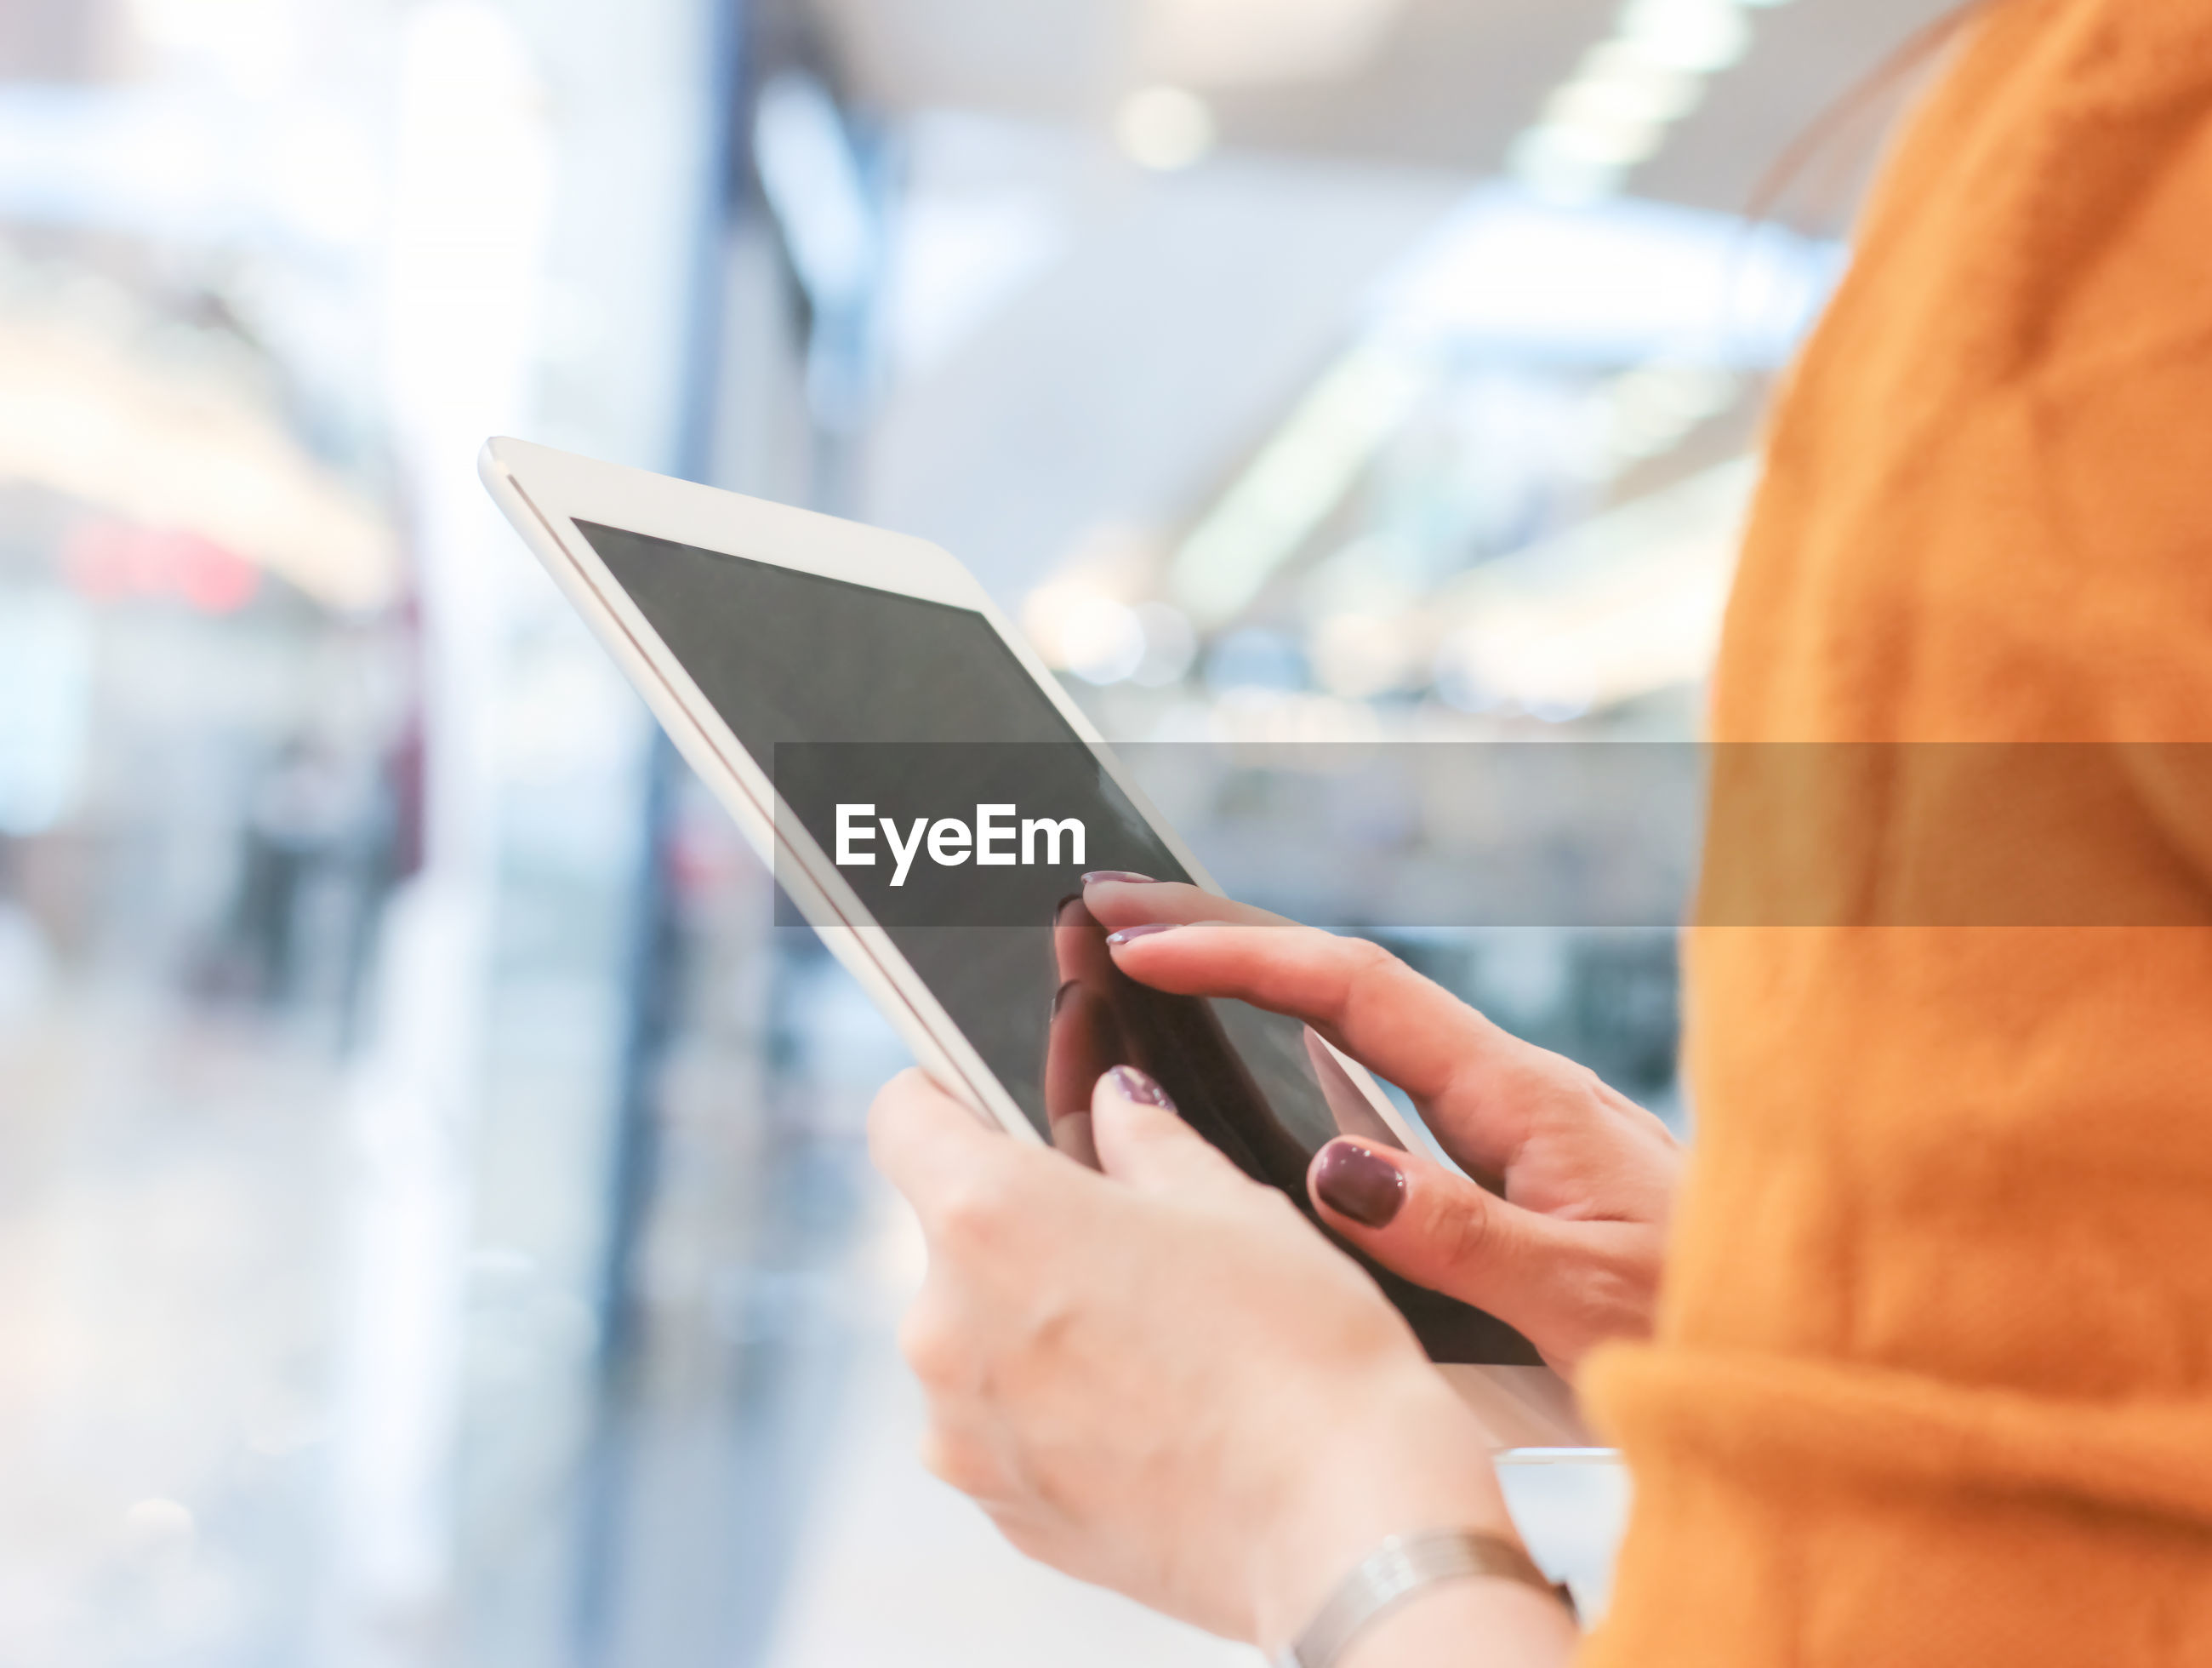 Close-up of woman using digital tablet in illuminated store